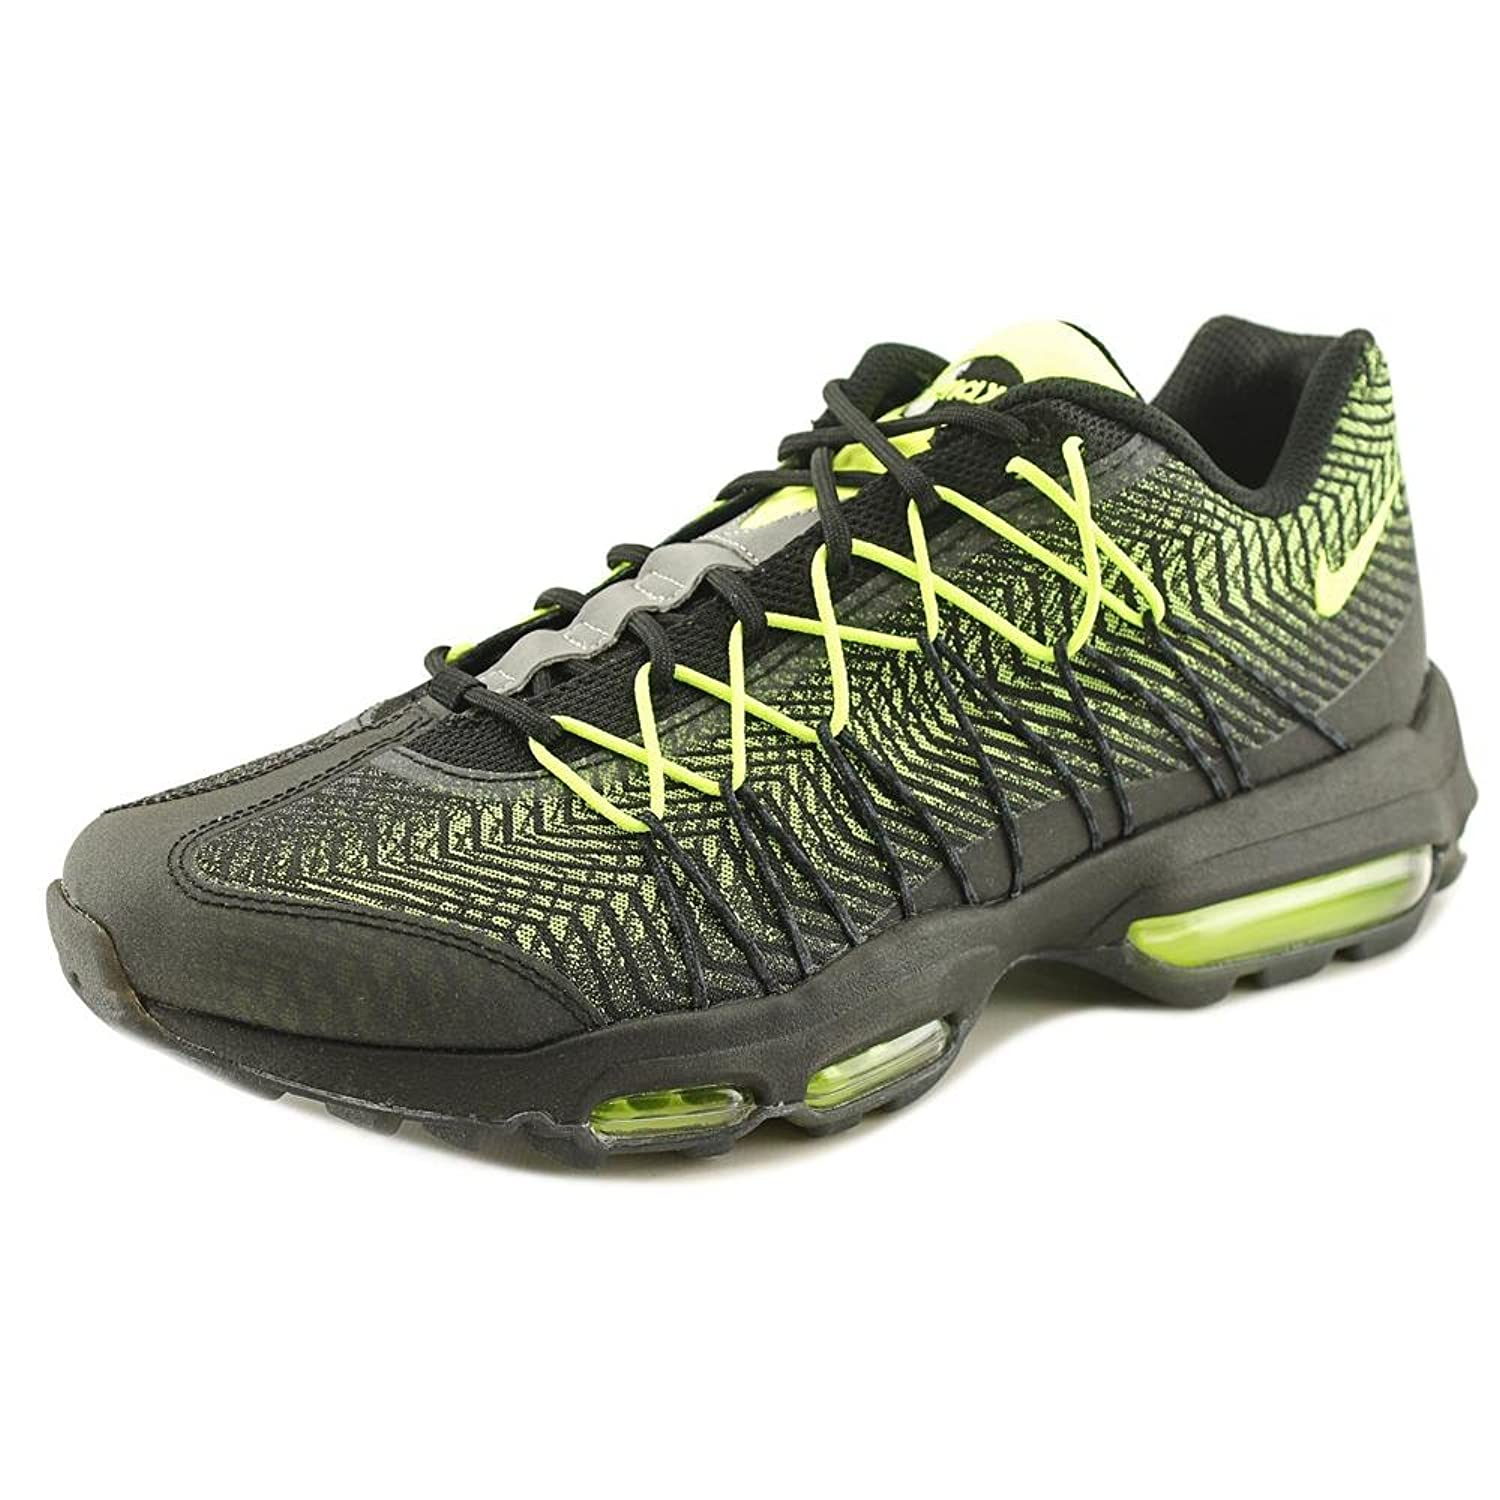 new arrival adbfb d5bc0 ... new style nike air max 95 ultra jacquard men us 11 black running shoe  be9a6 fff38